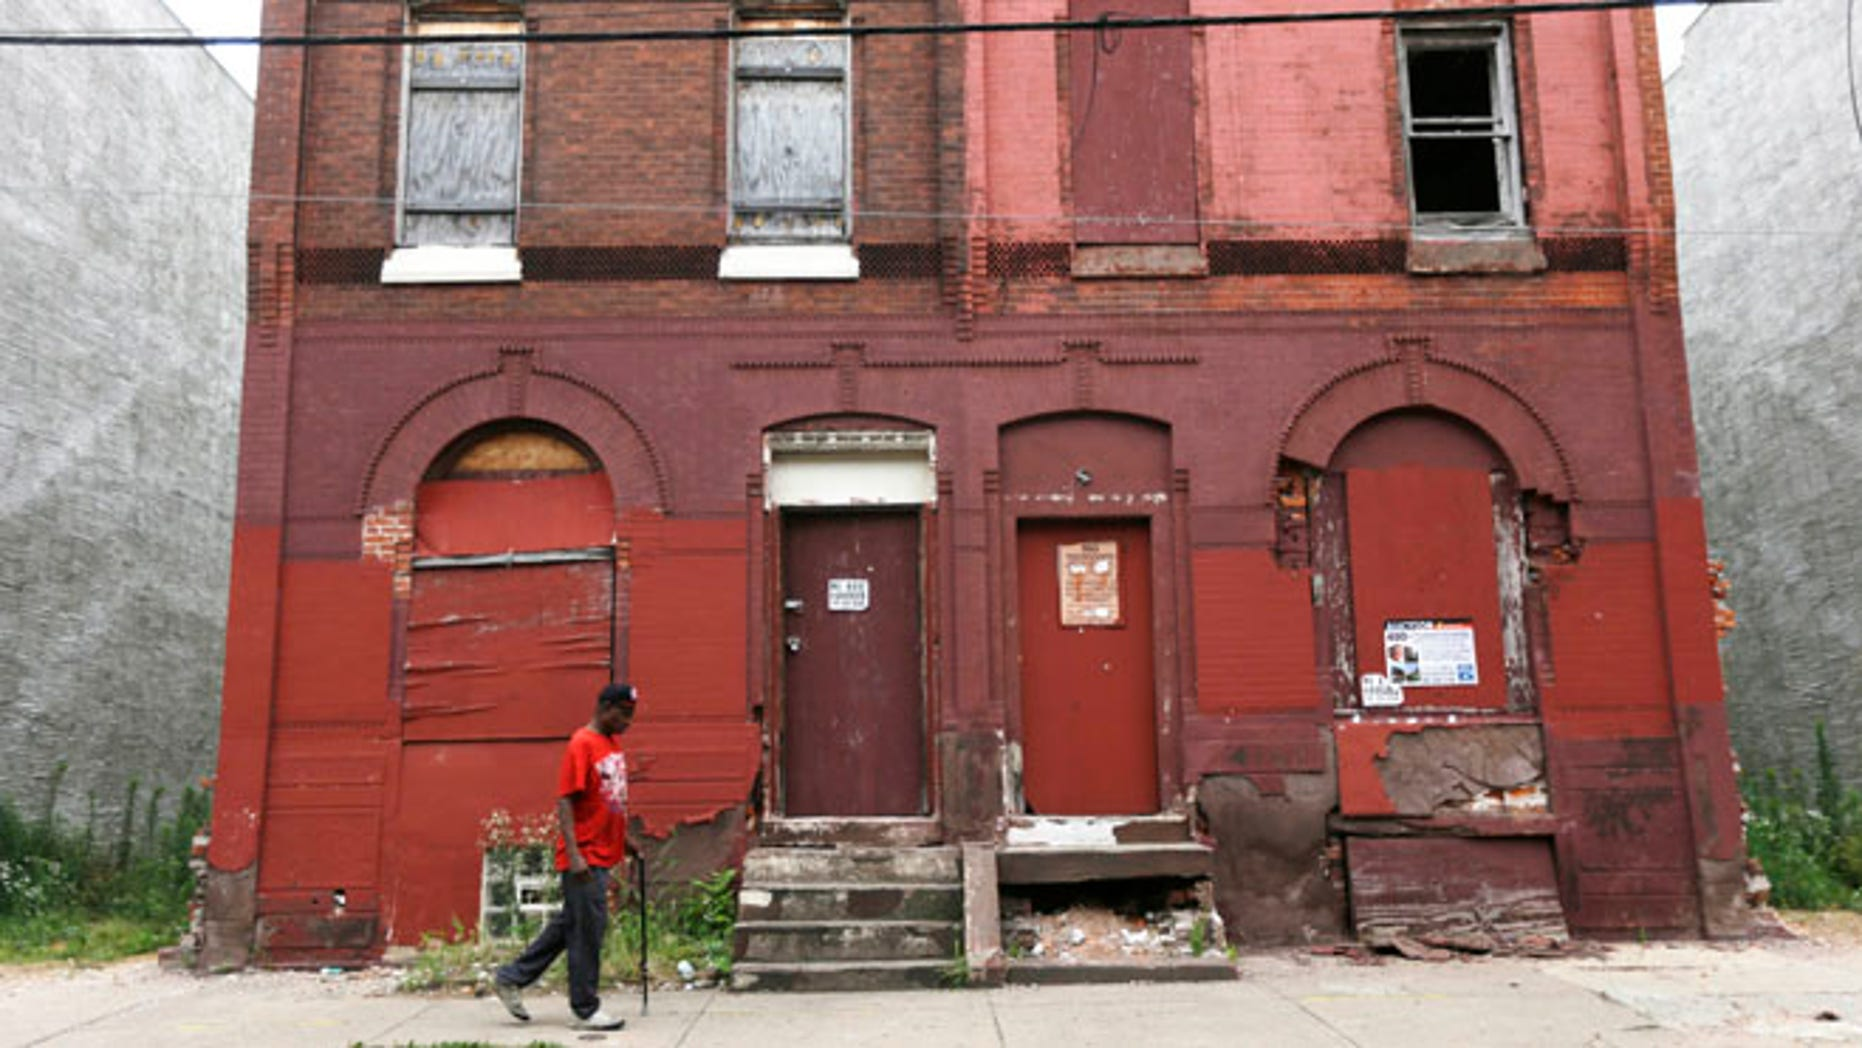 FILE - In this July 11, 2013 file photo a man walks through a blighted neighborhood in Philadelphia. Democrats are set to begin their convention Monday, July 25, 2016, in a city that symbolizes both the nation's promise and its shortcomings. (AP Photo/Matt Rourke, File)